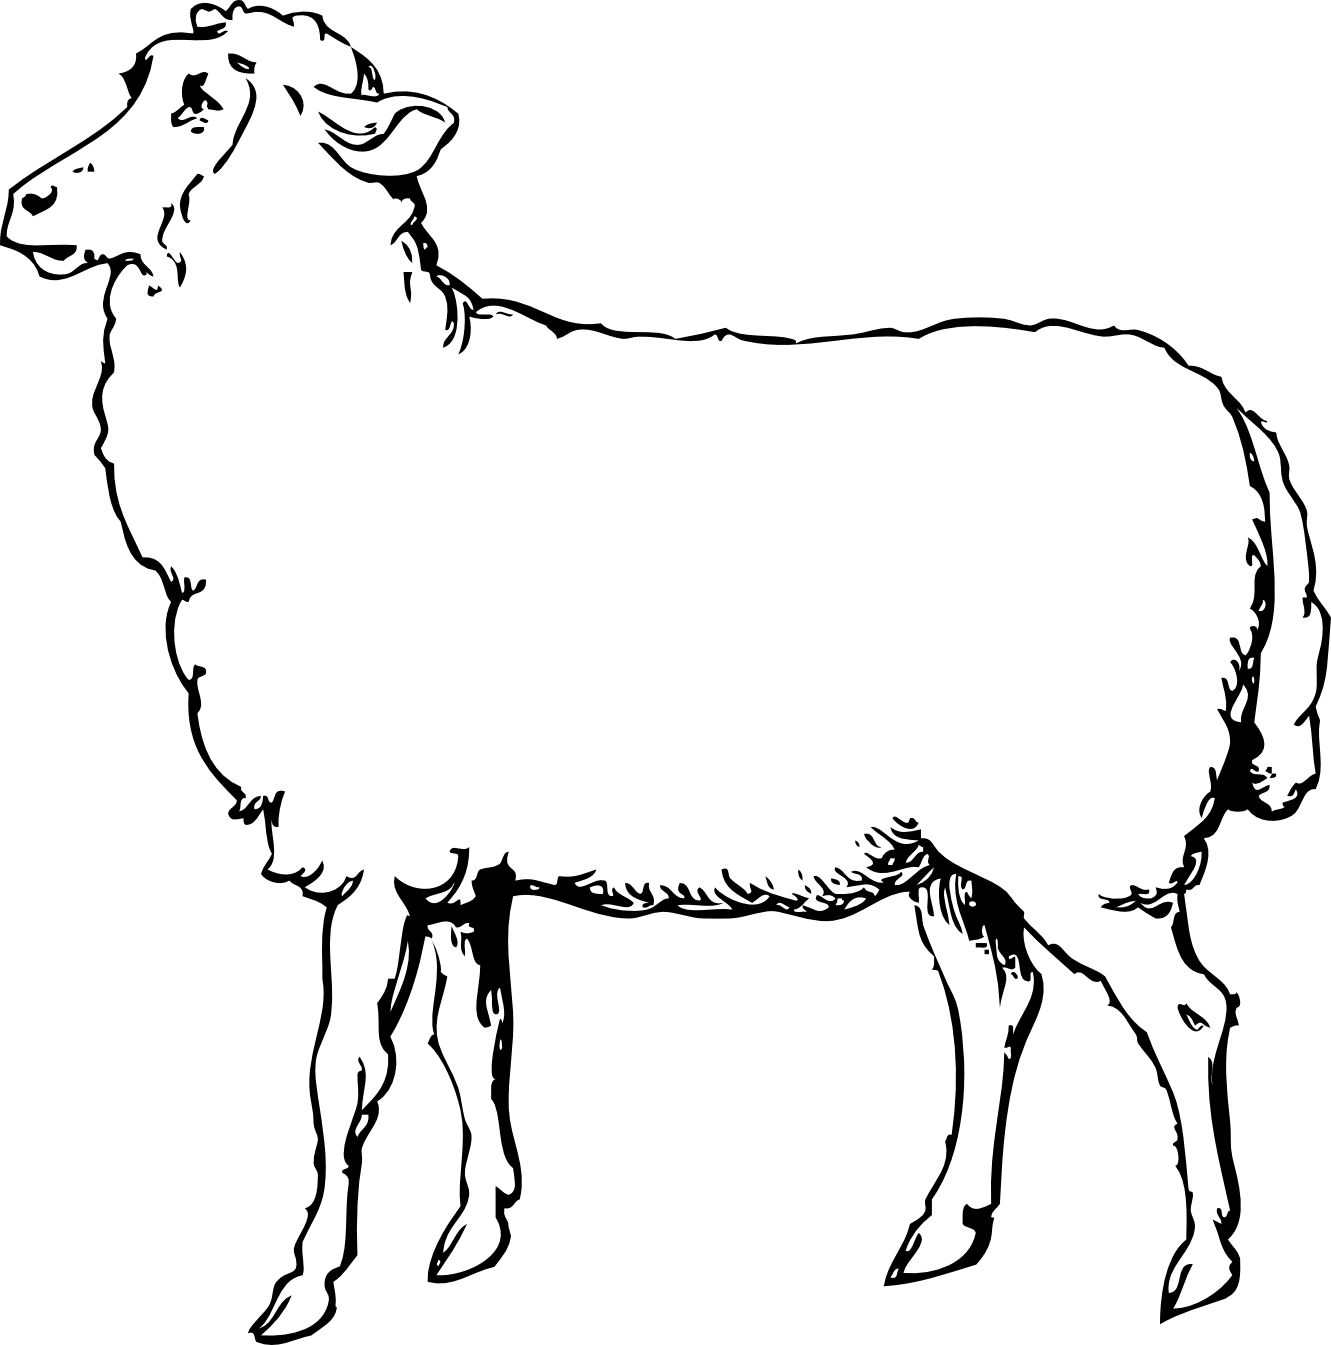 Lamb Clipart Black And White Sheep 1 Black White Line Art